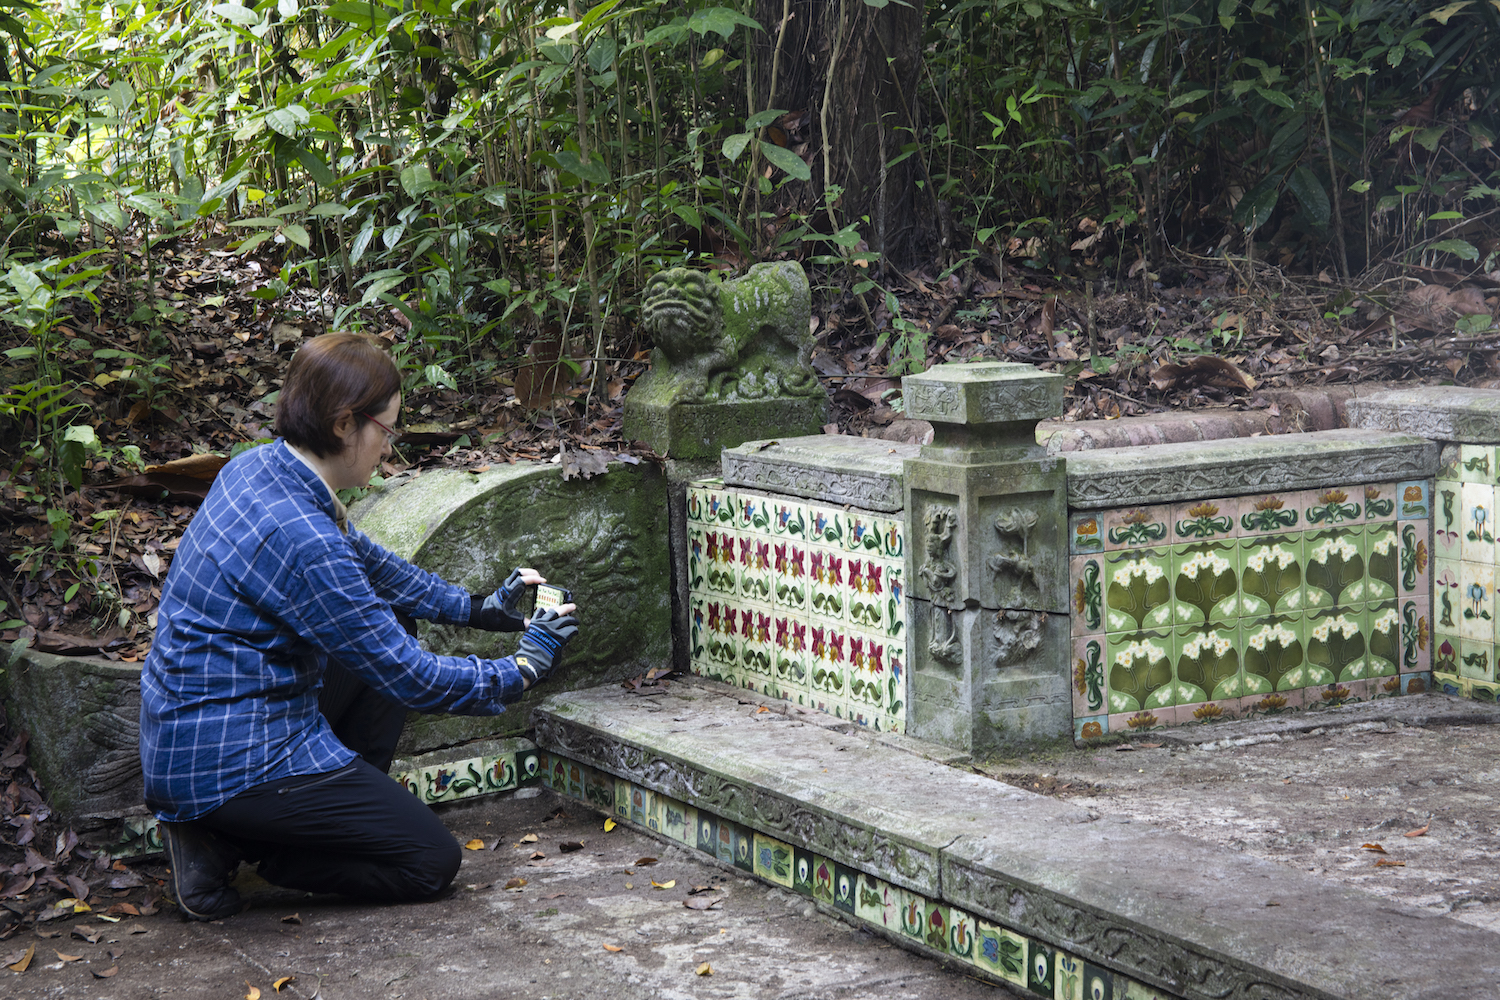 One of the most beautiful majolica tile tombs at the Great Bukit Brown Cemetery complex.